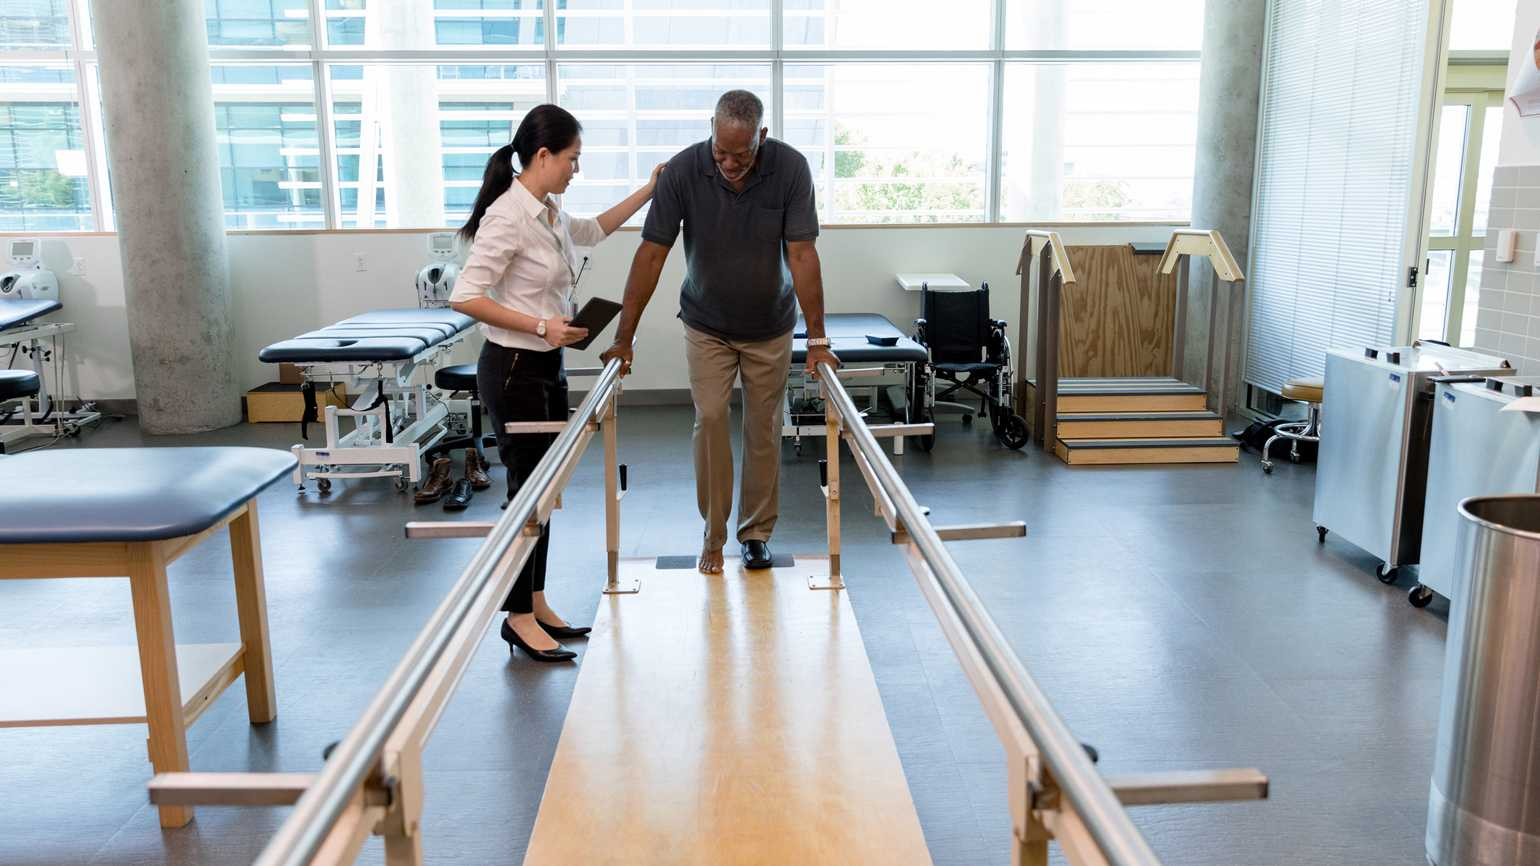 An older man undergoes walking physical therapy with guidance.